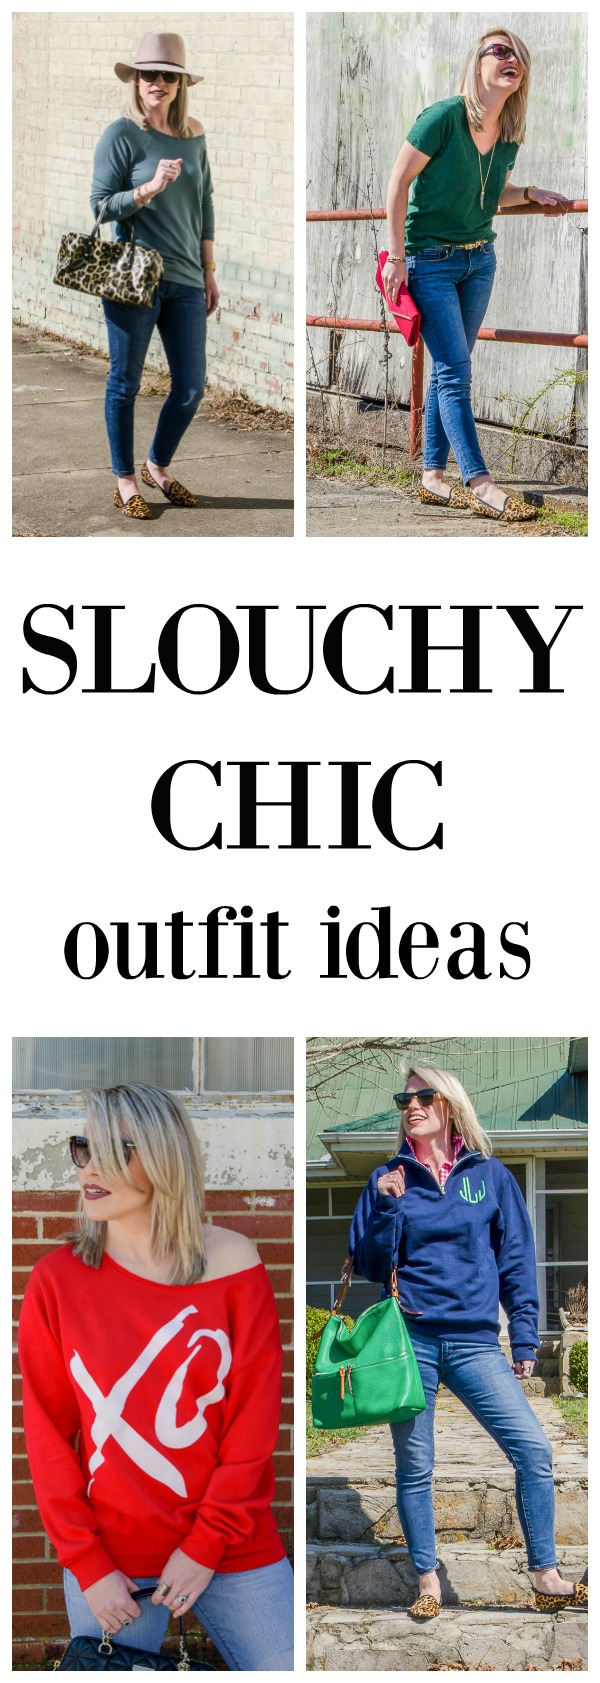 Slouchy Chic Outfit Ideas | Slouchy Sweatshirt Outfit | T-Shirt Outfit Dressy | Quarter Zip Pullover Outfit Casual